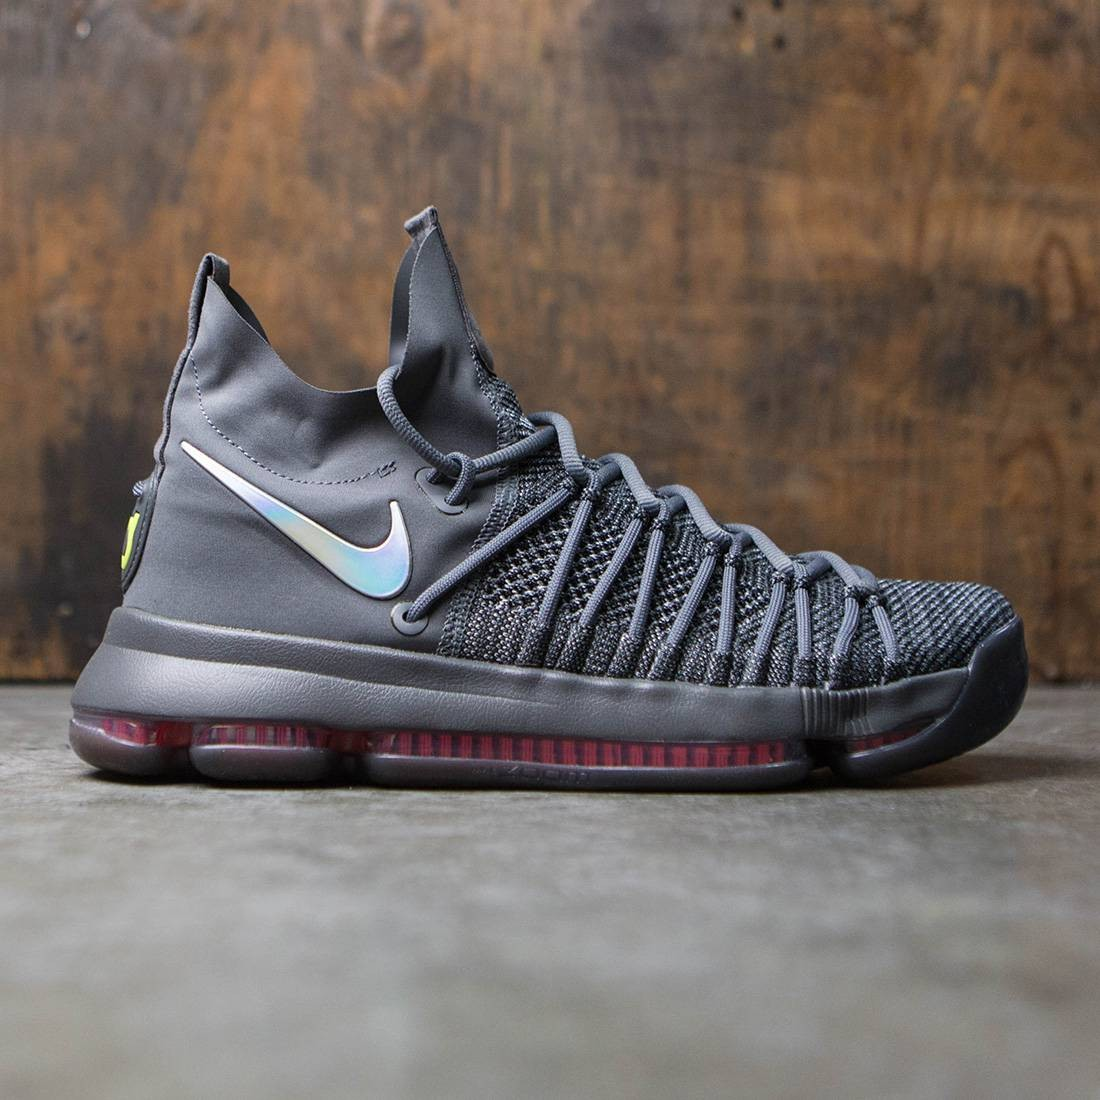 eeb8a91d1691 nike men zoom kd9 elite ts gray dark grey sail hyper jade